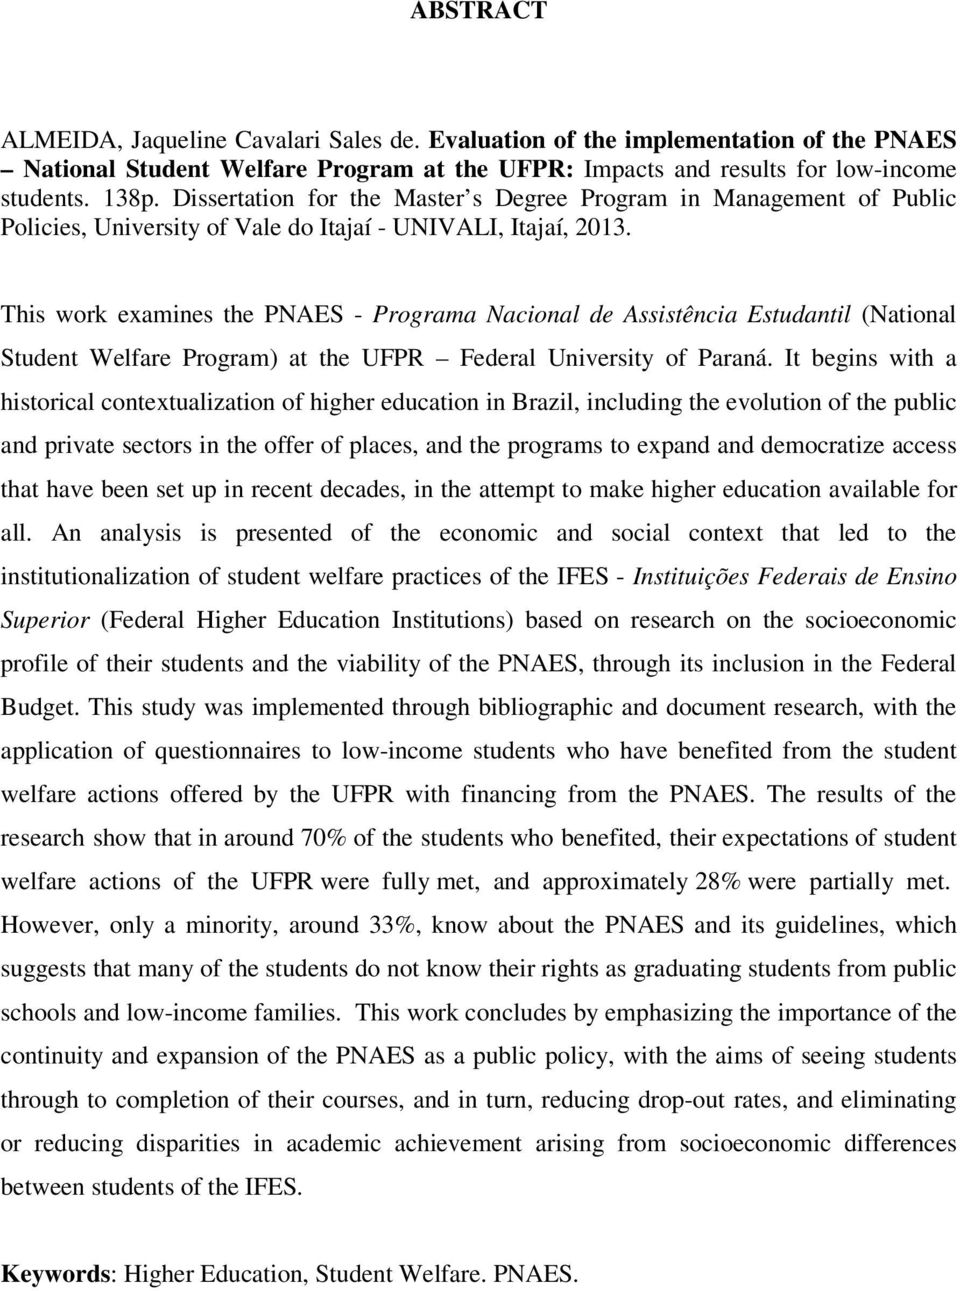 This work examines the PNAES - Programa Nacional de Assistência Estudantil (National Student Welfare Program) at the UFPR Federal University of Paraná.